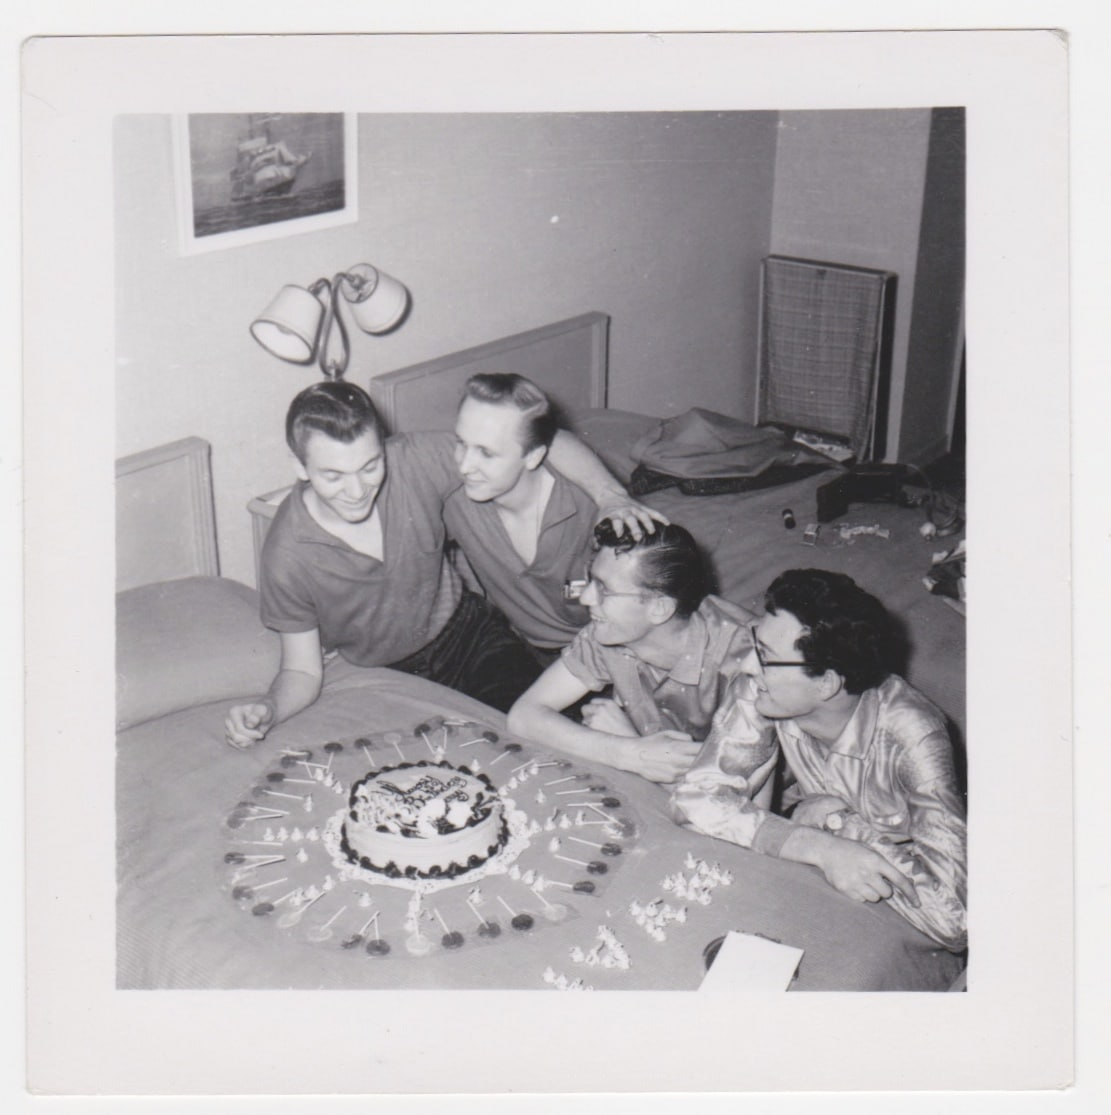 Buddy Holly 3 Birthday Party Snapshots From His Personal